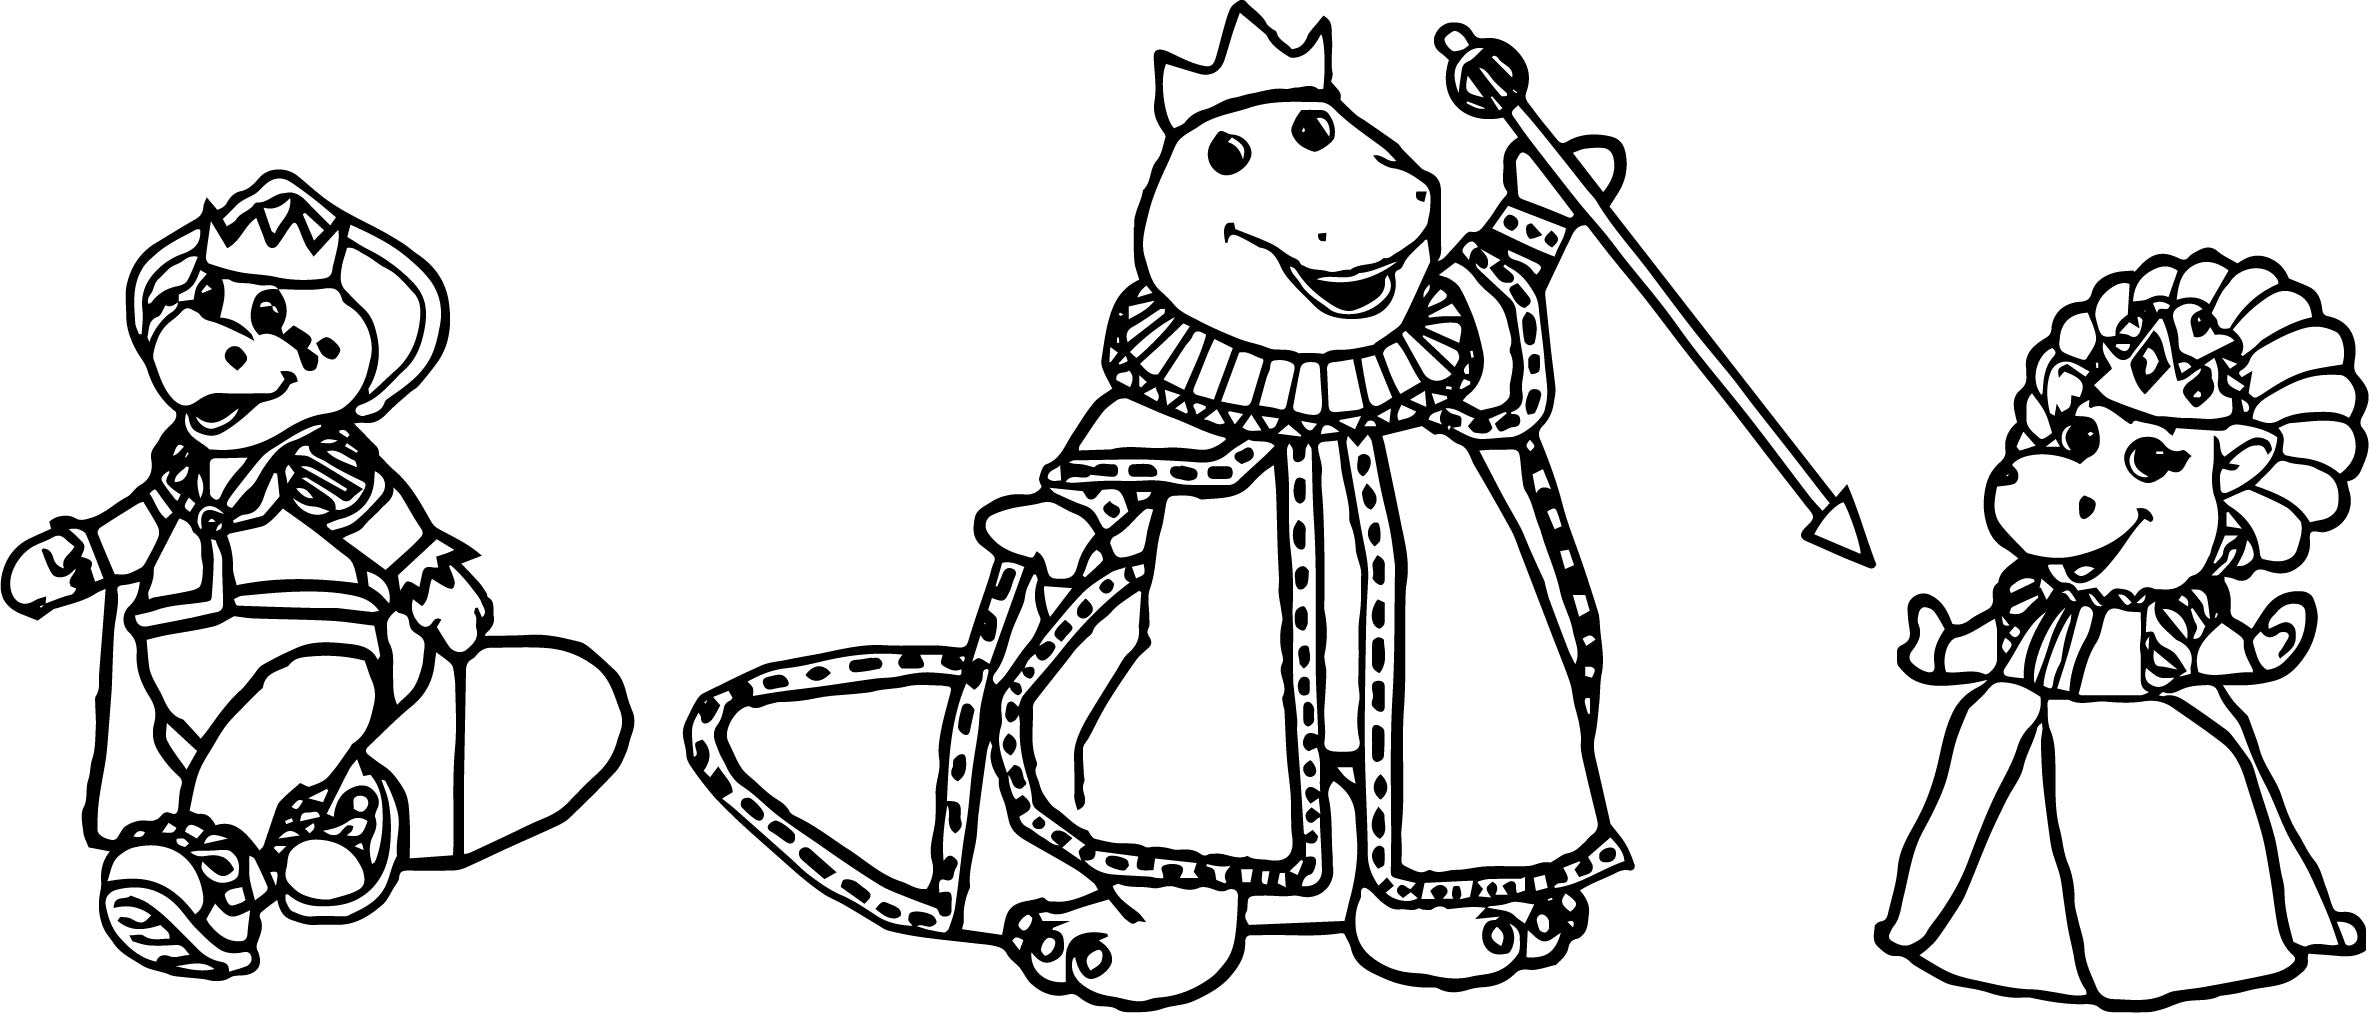 Barney Bj Baby Bop Royalty Coloring Page | Wecoloringpage